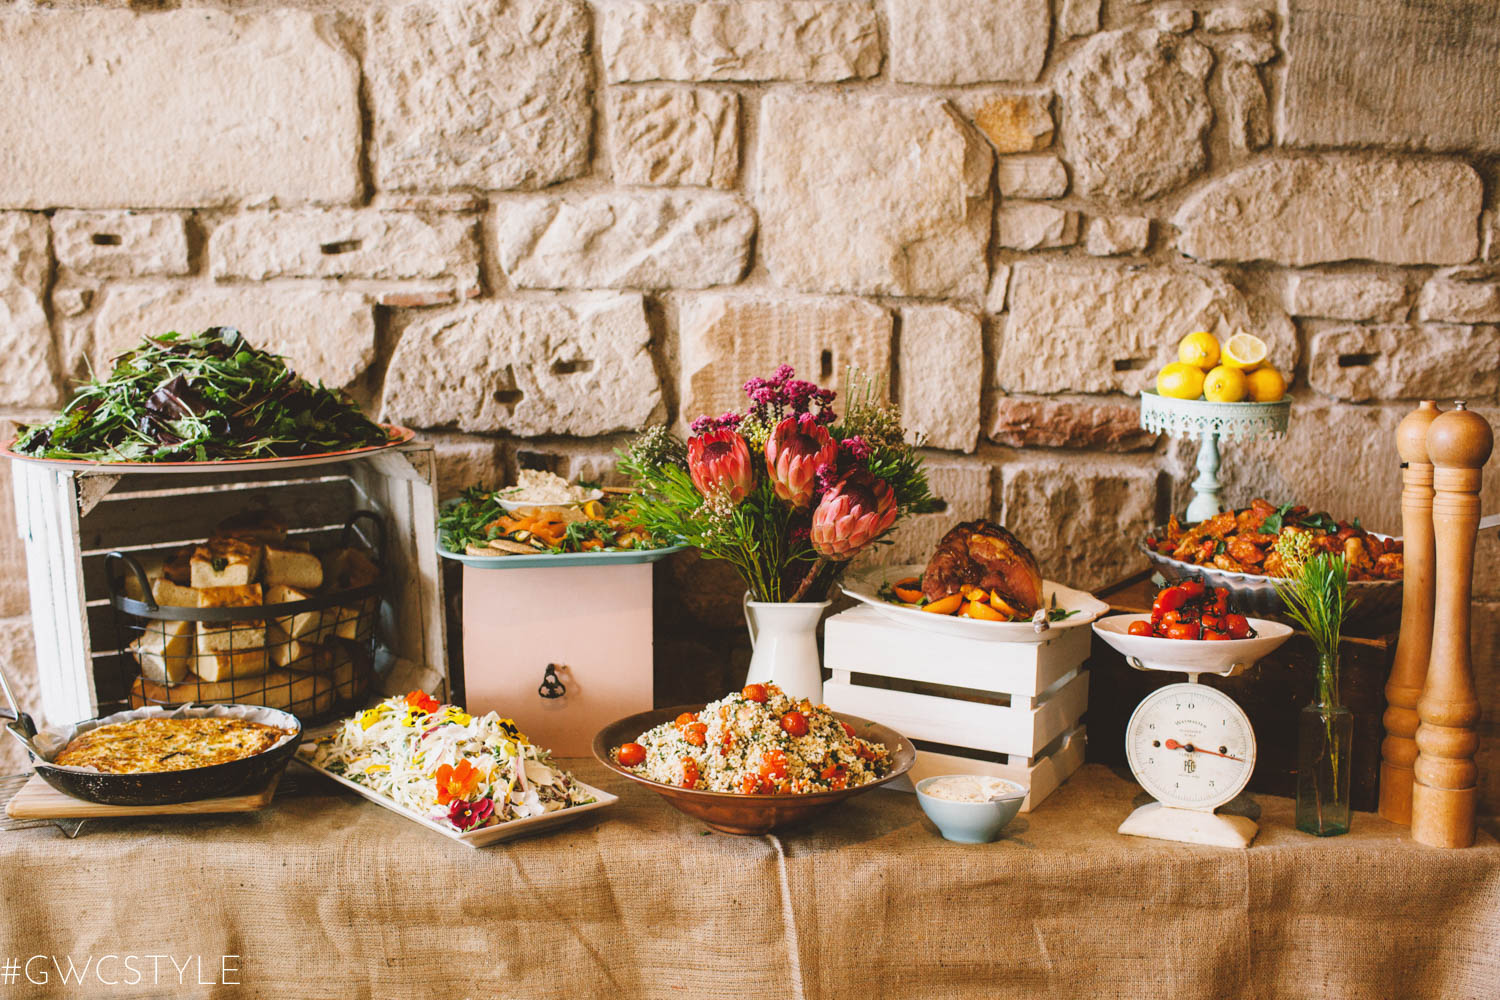 Glasgow Wedding Collective Style Event Florals And Corals